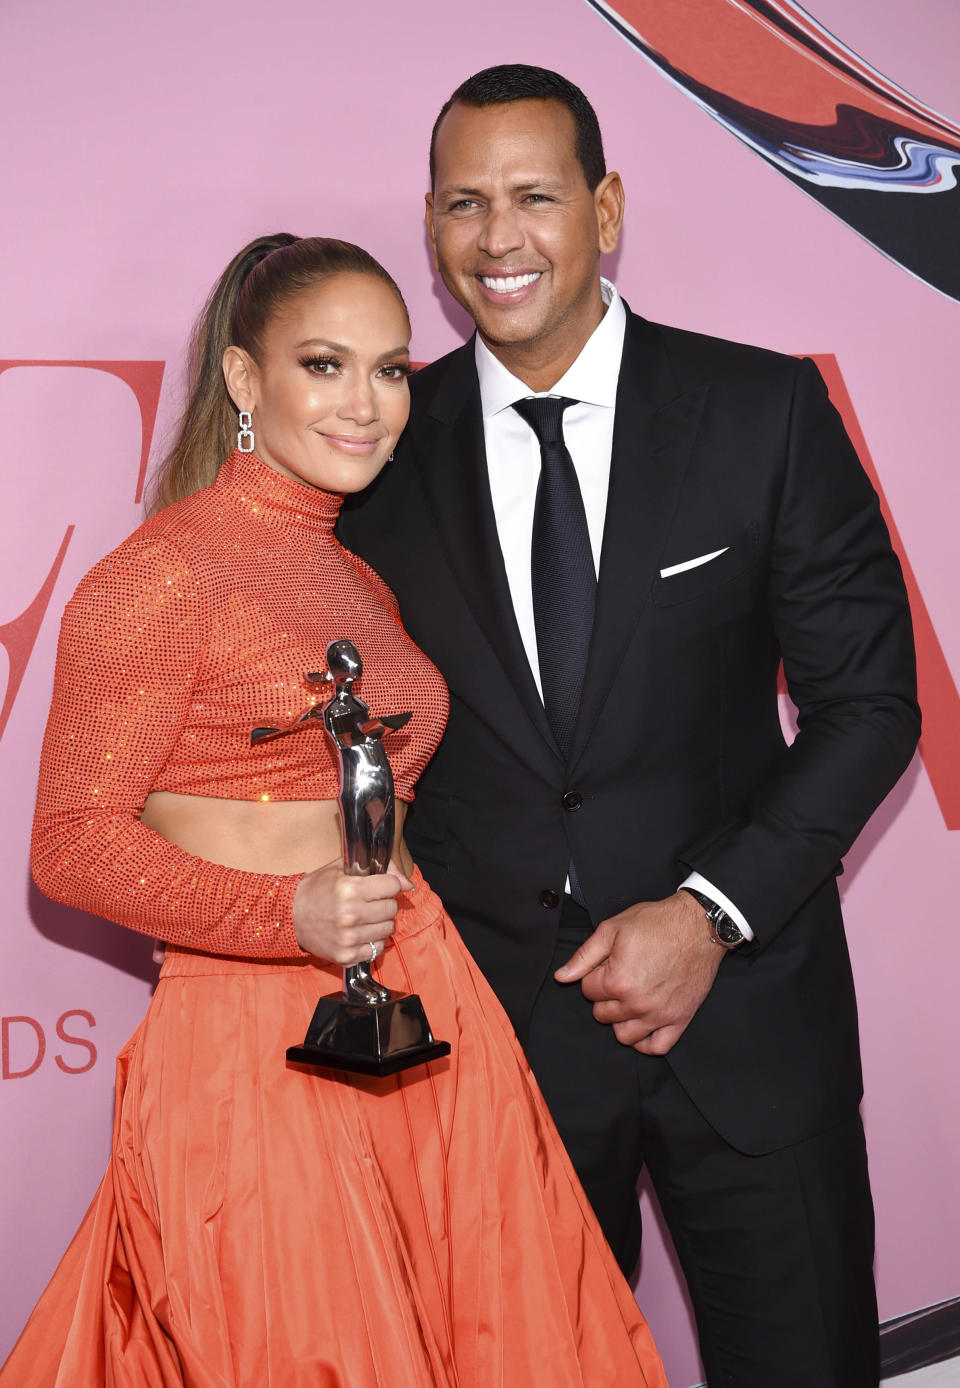 FILE - In this Monday, June 3, 2019, file photo, fashion icon award honoree Jennifer Lopez, left, poses with her fiancé Alex Rodriguez at the CFDA Fashion Awards at the Brooklyn Museum, in New York. Multiple reports based on anonymous sources say Lopez and Rodriguez called off their two-year engagement. The former New York Yankees shortstop proposed to the actor a couple years ago after the celebrity couple started dating in early 2017. (Photo by Evan Agostini/Invision/AP, File)